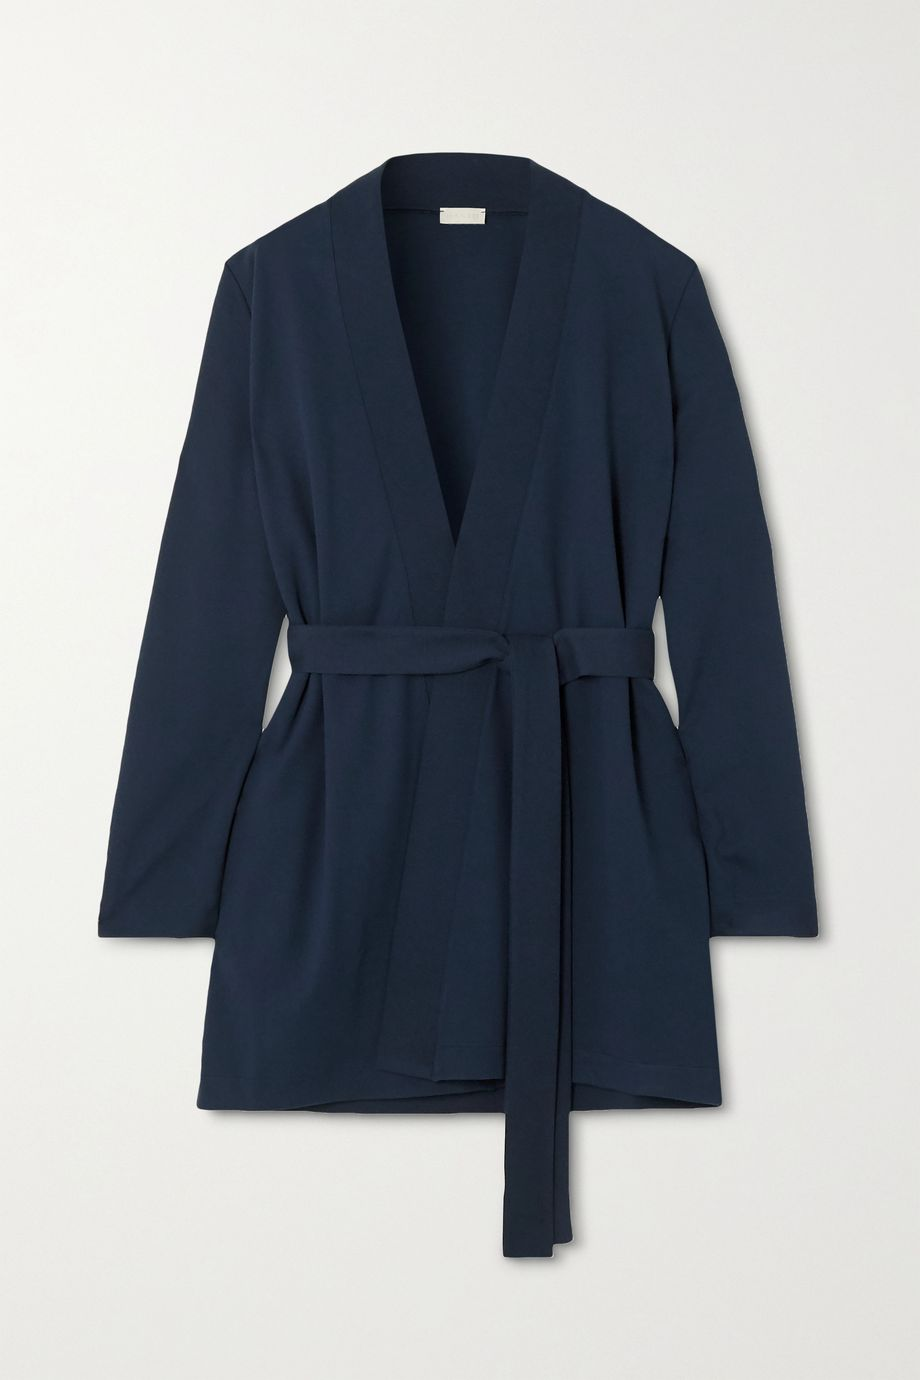 Hanro Pure Comfort belted piqué-trimmed jersey cardigan